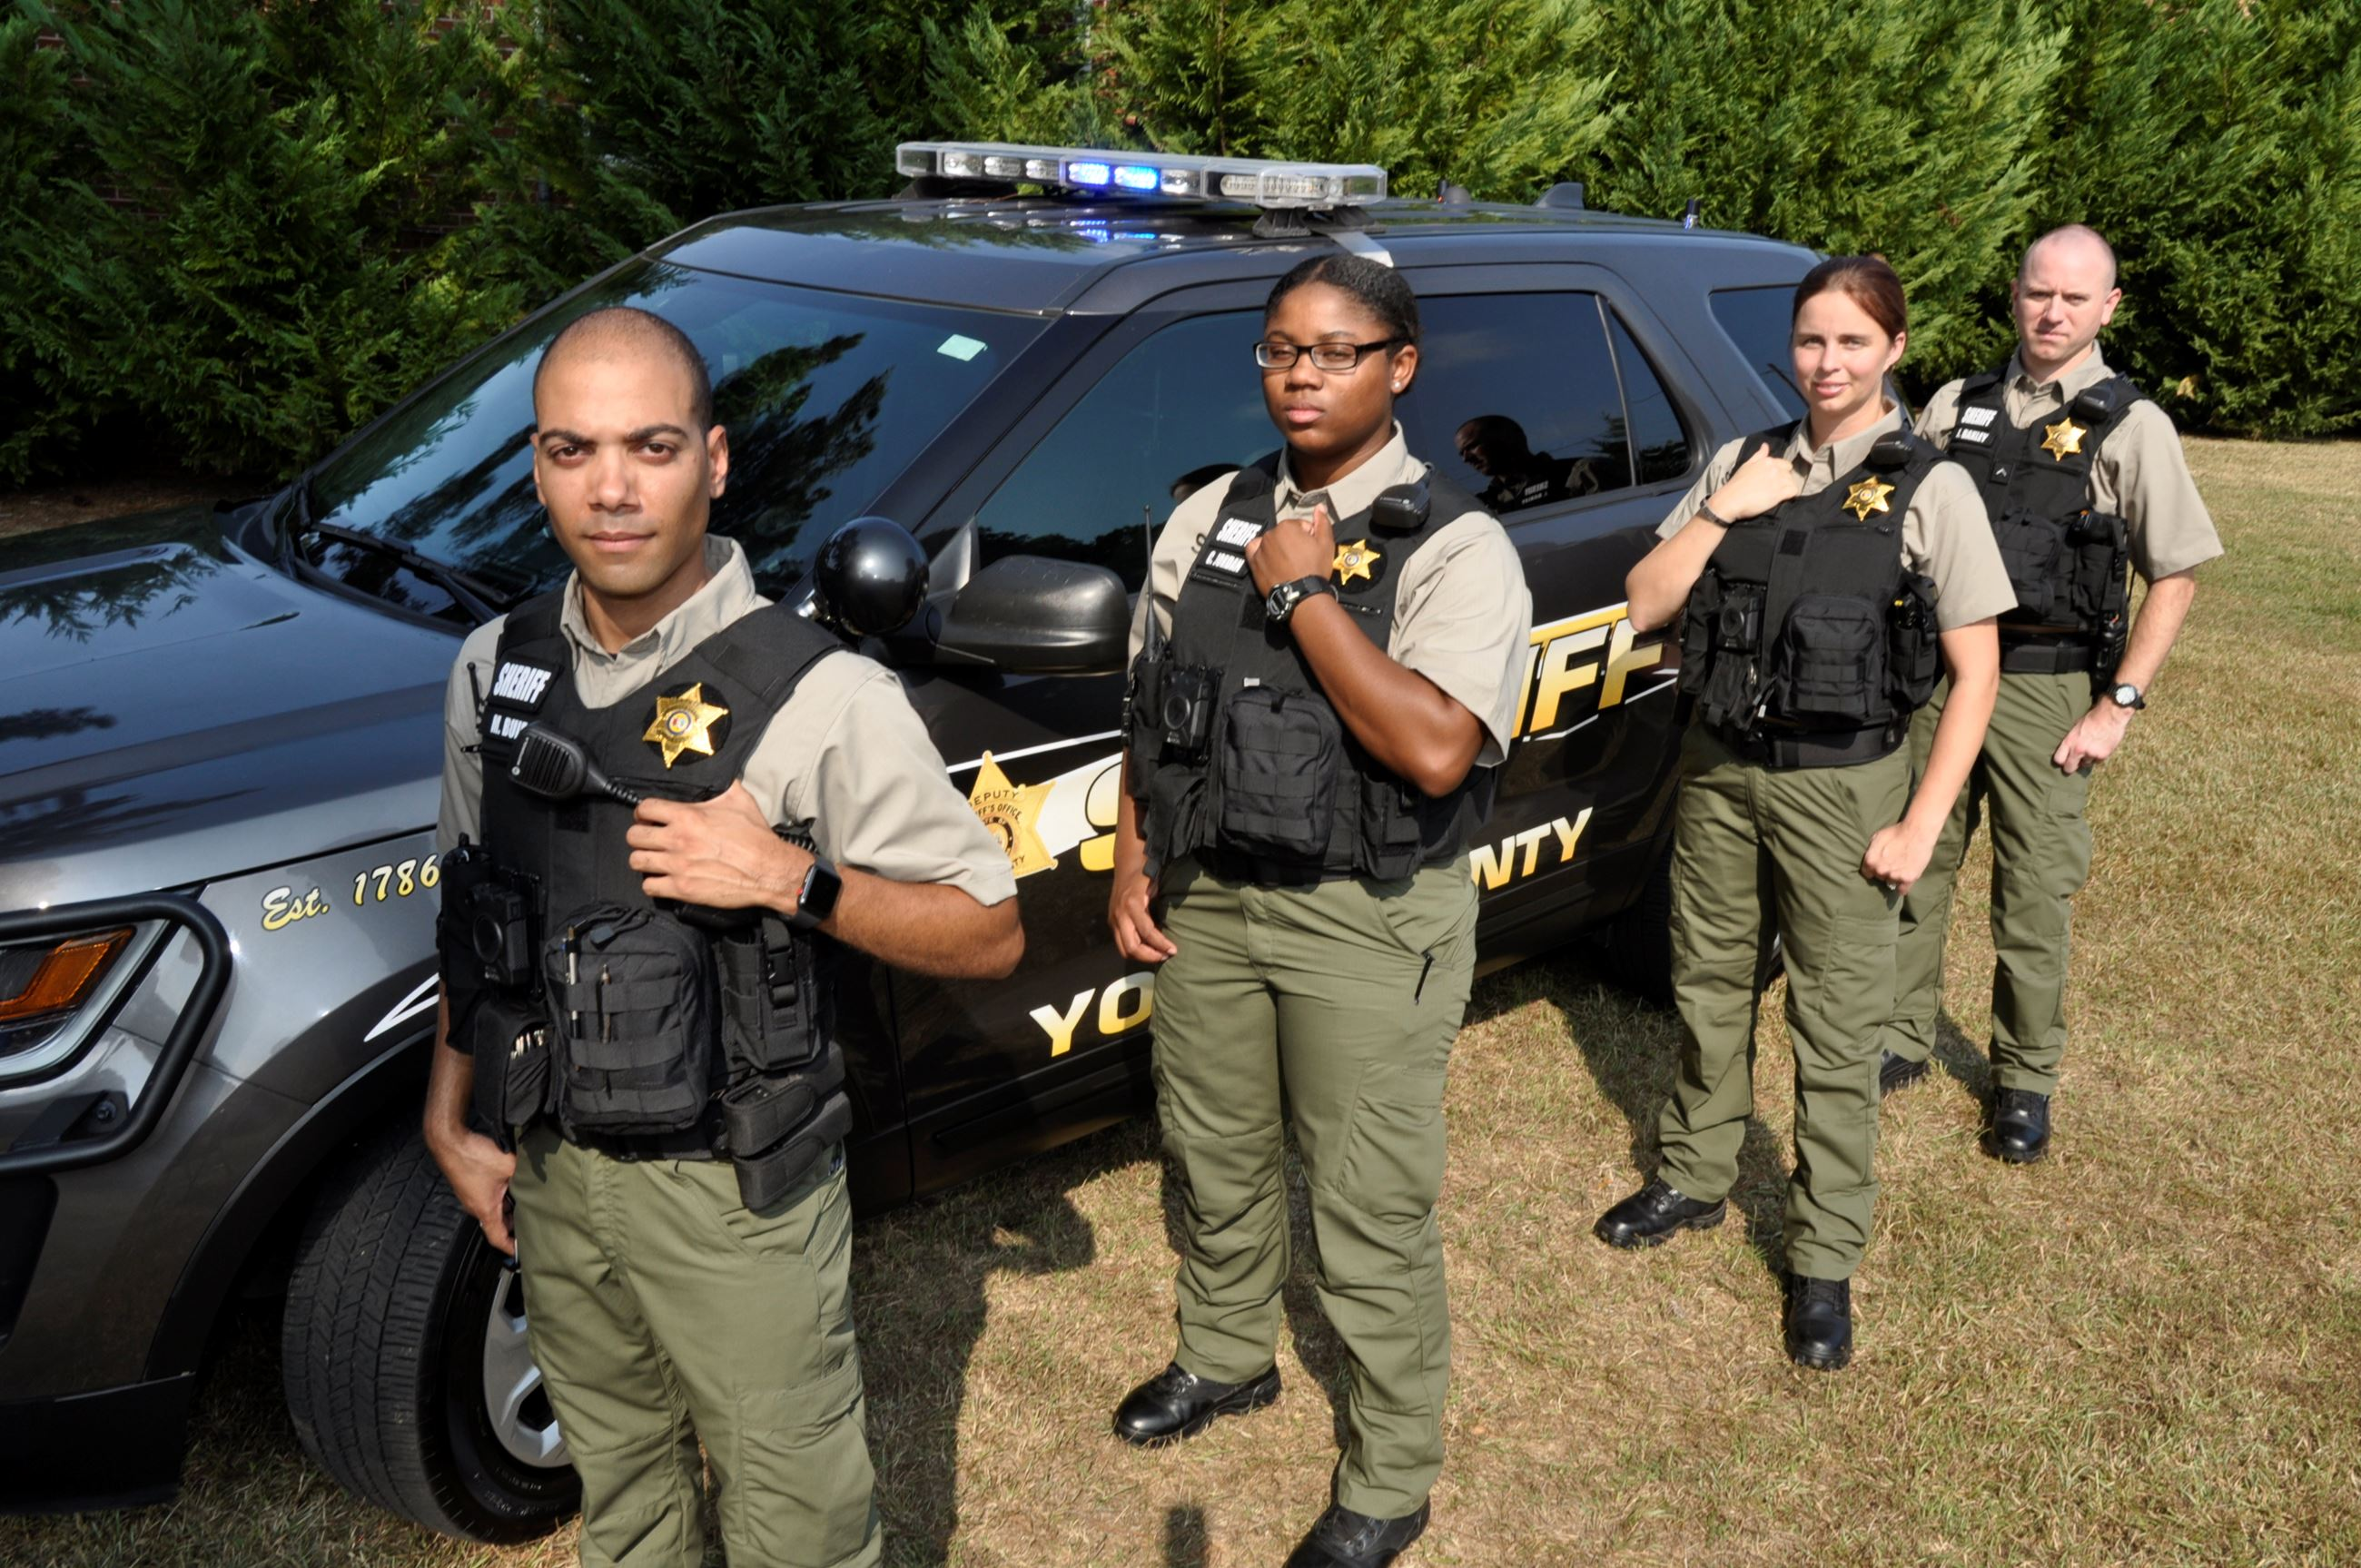 Four Deputies in the new Sheriff's Office uniforms standing in front of a SUV patrol car